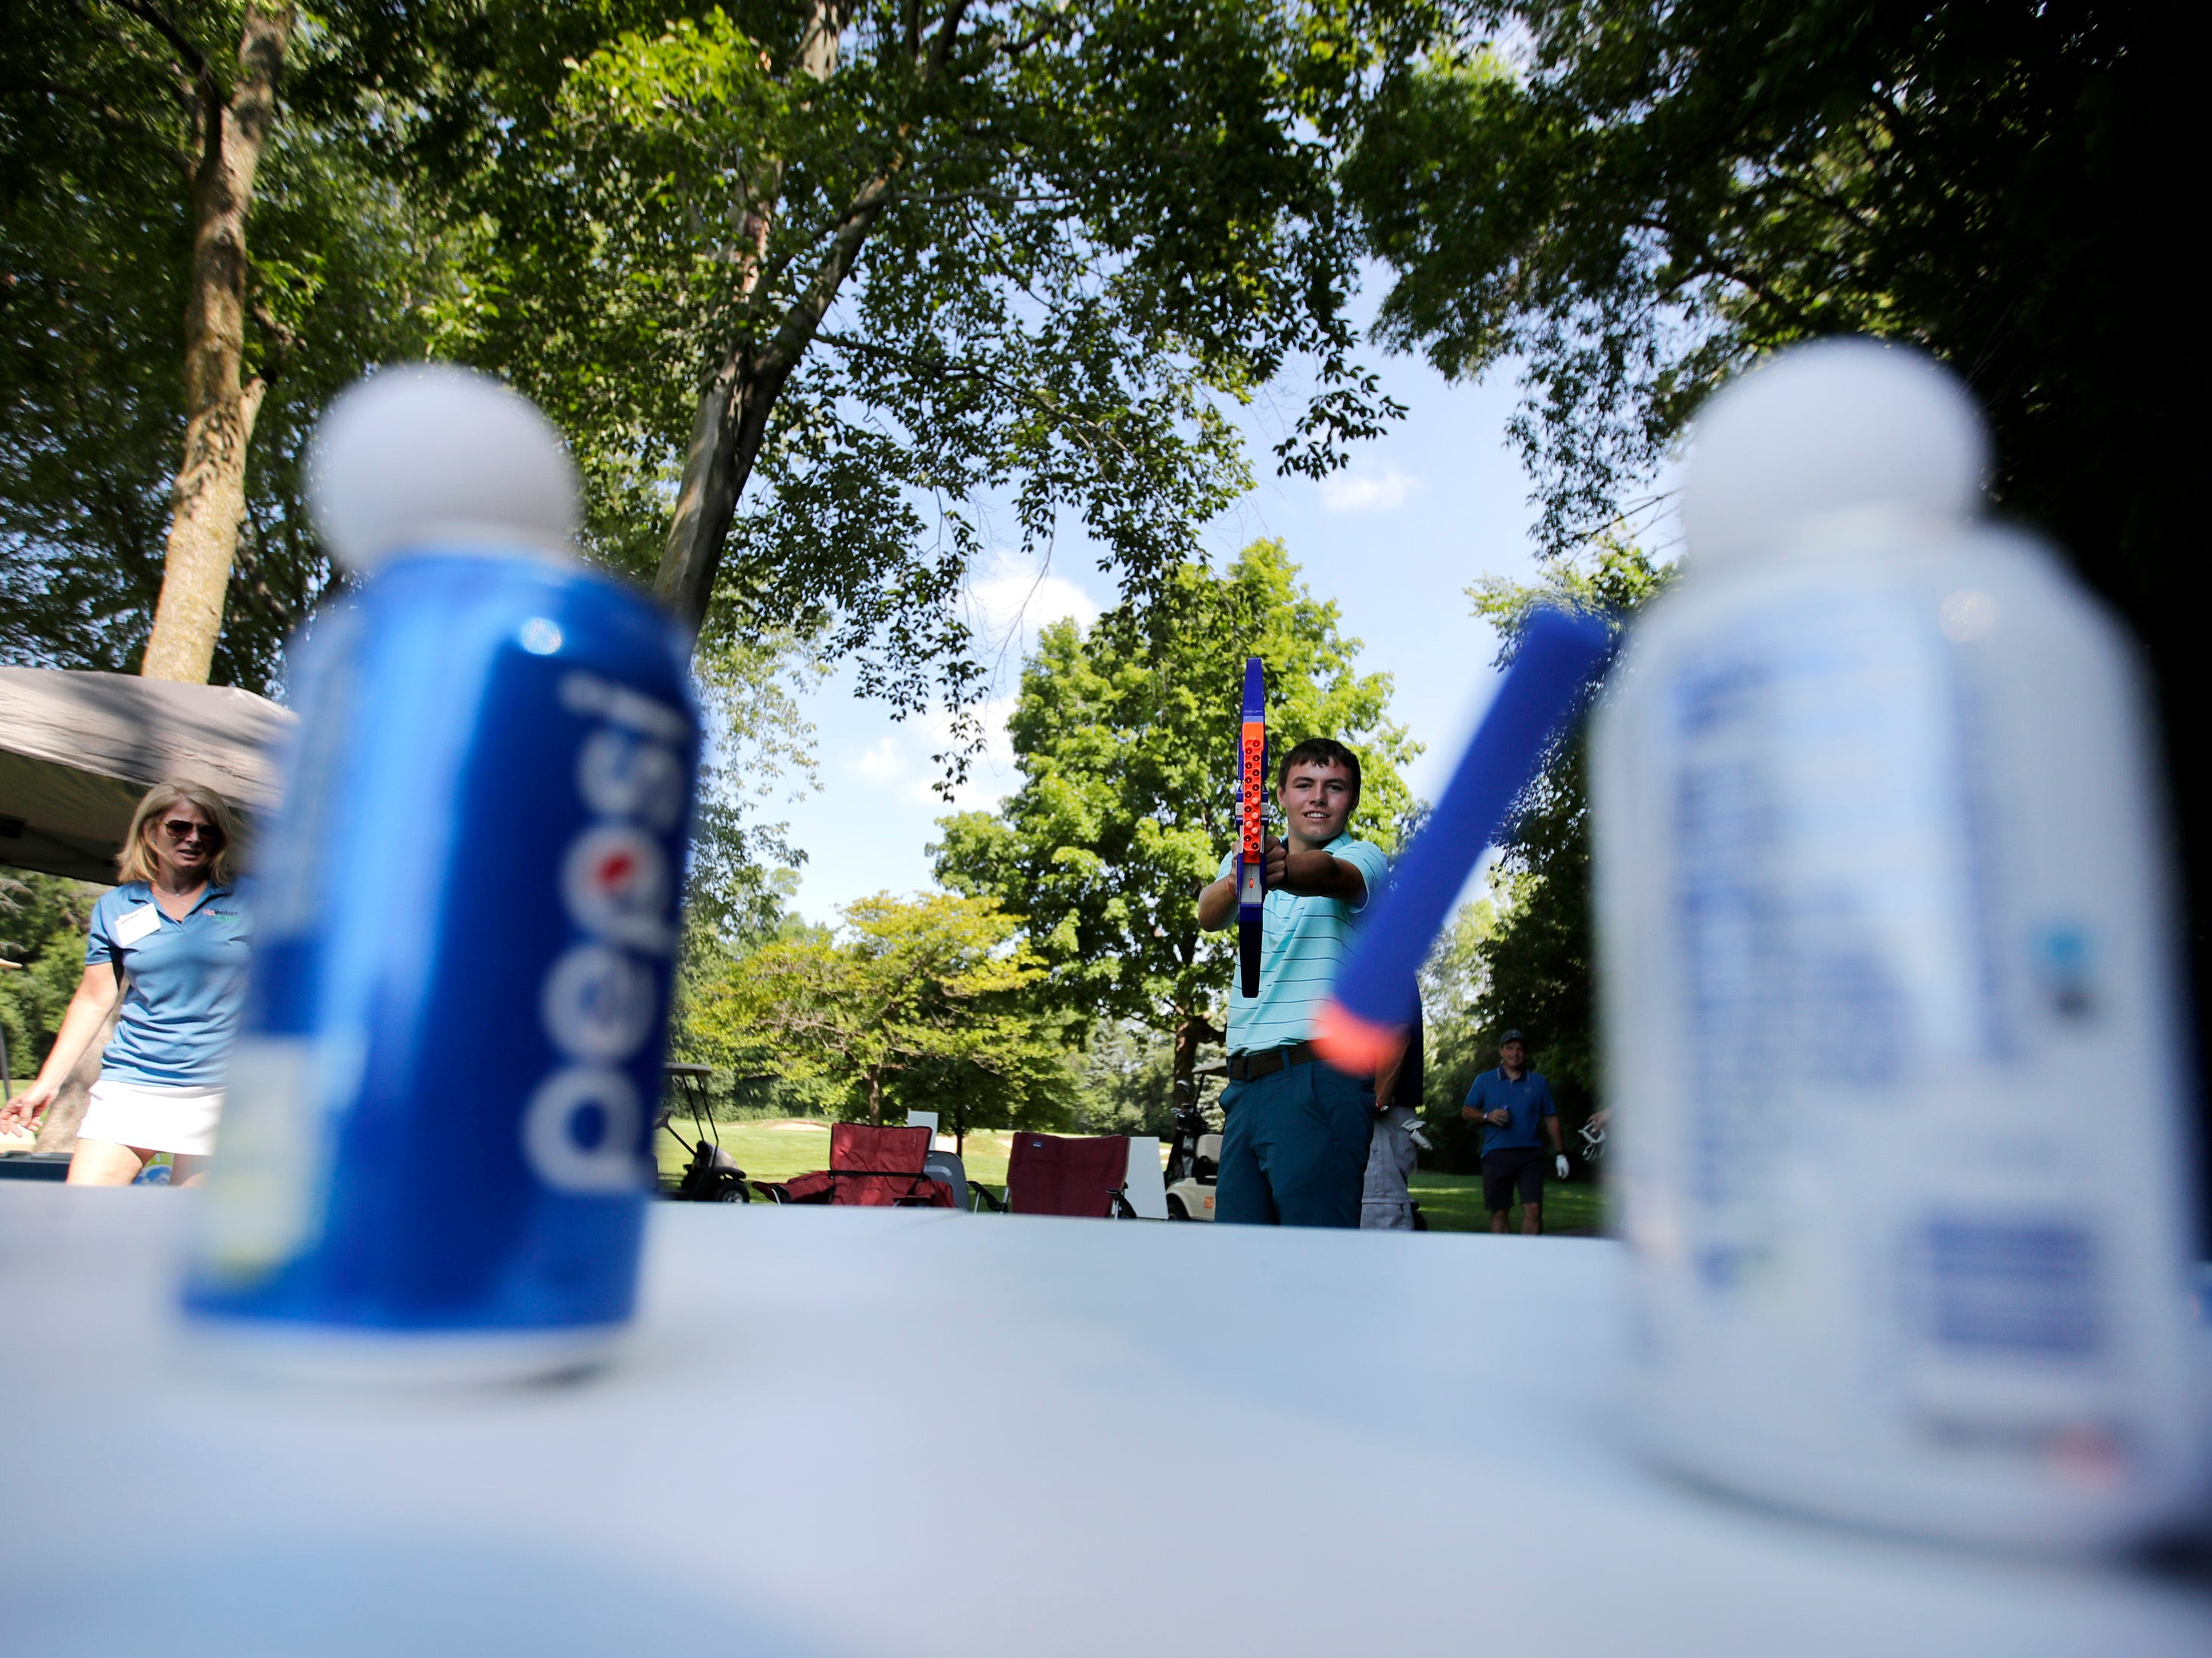 Zach Sheriff, with Fox Valley Auto Auction, plays a game before teeing off during the U.S. Venture Open Wednesday, Aug. 8, 2018, at North Shore Golf Club in Menasha, Wis.